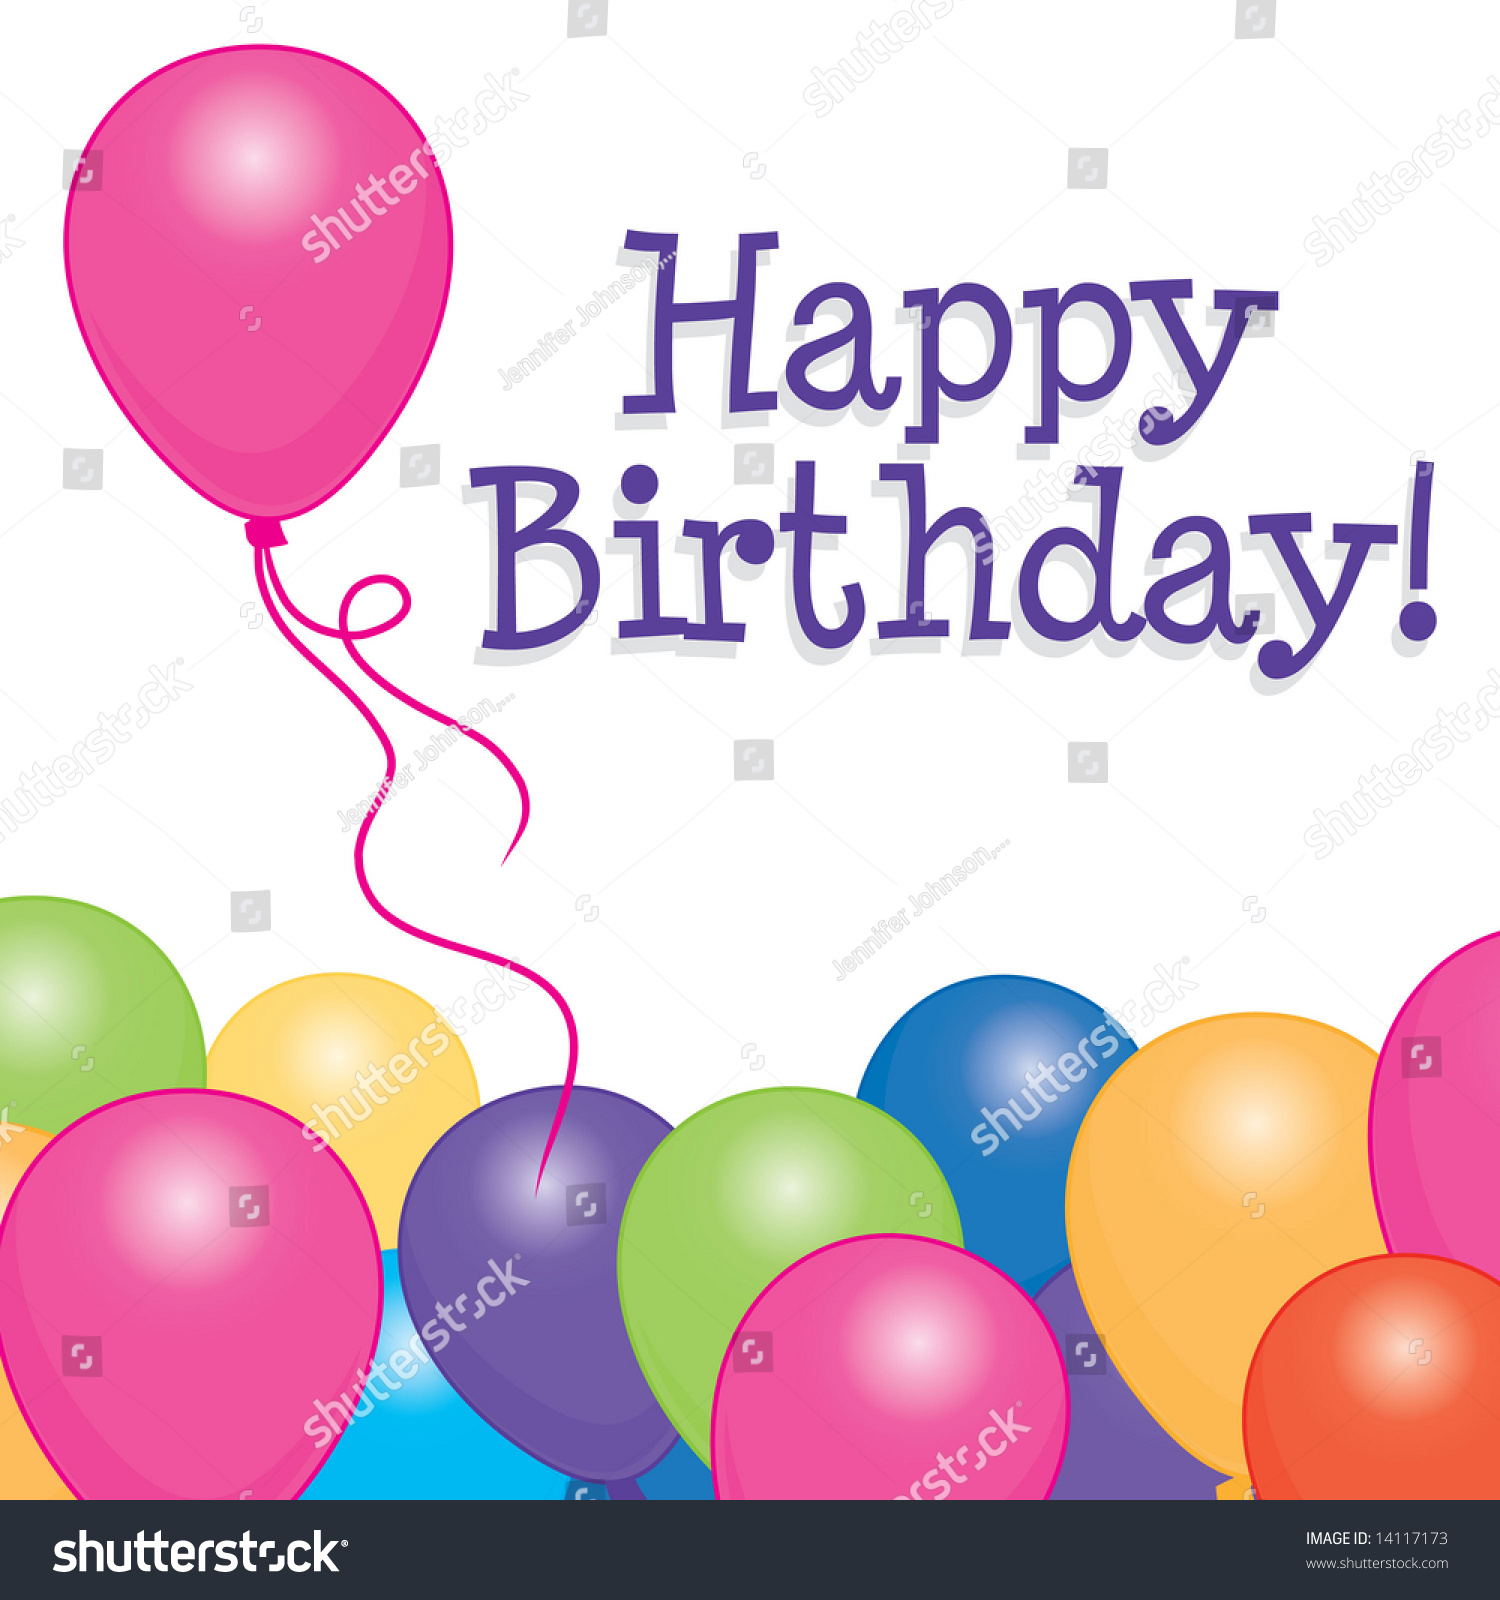 Happy Birthday Card / Background With Brightly Colored